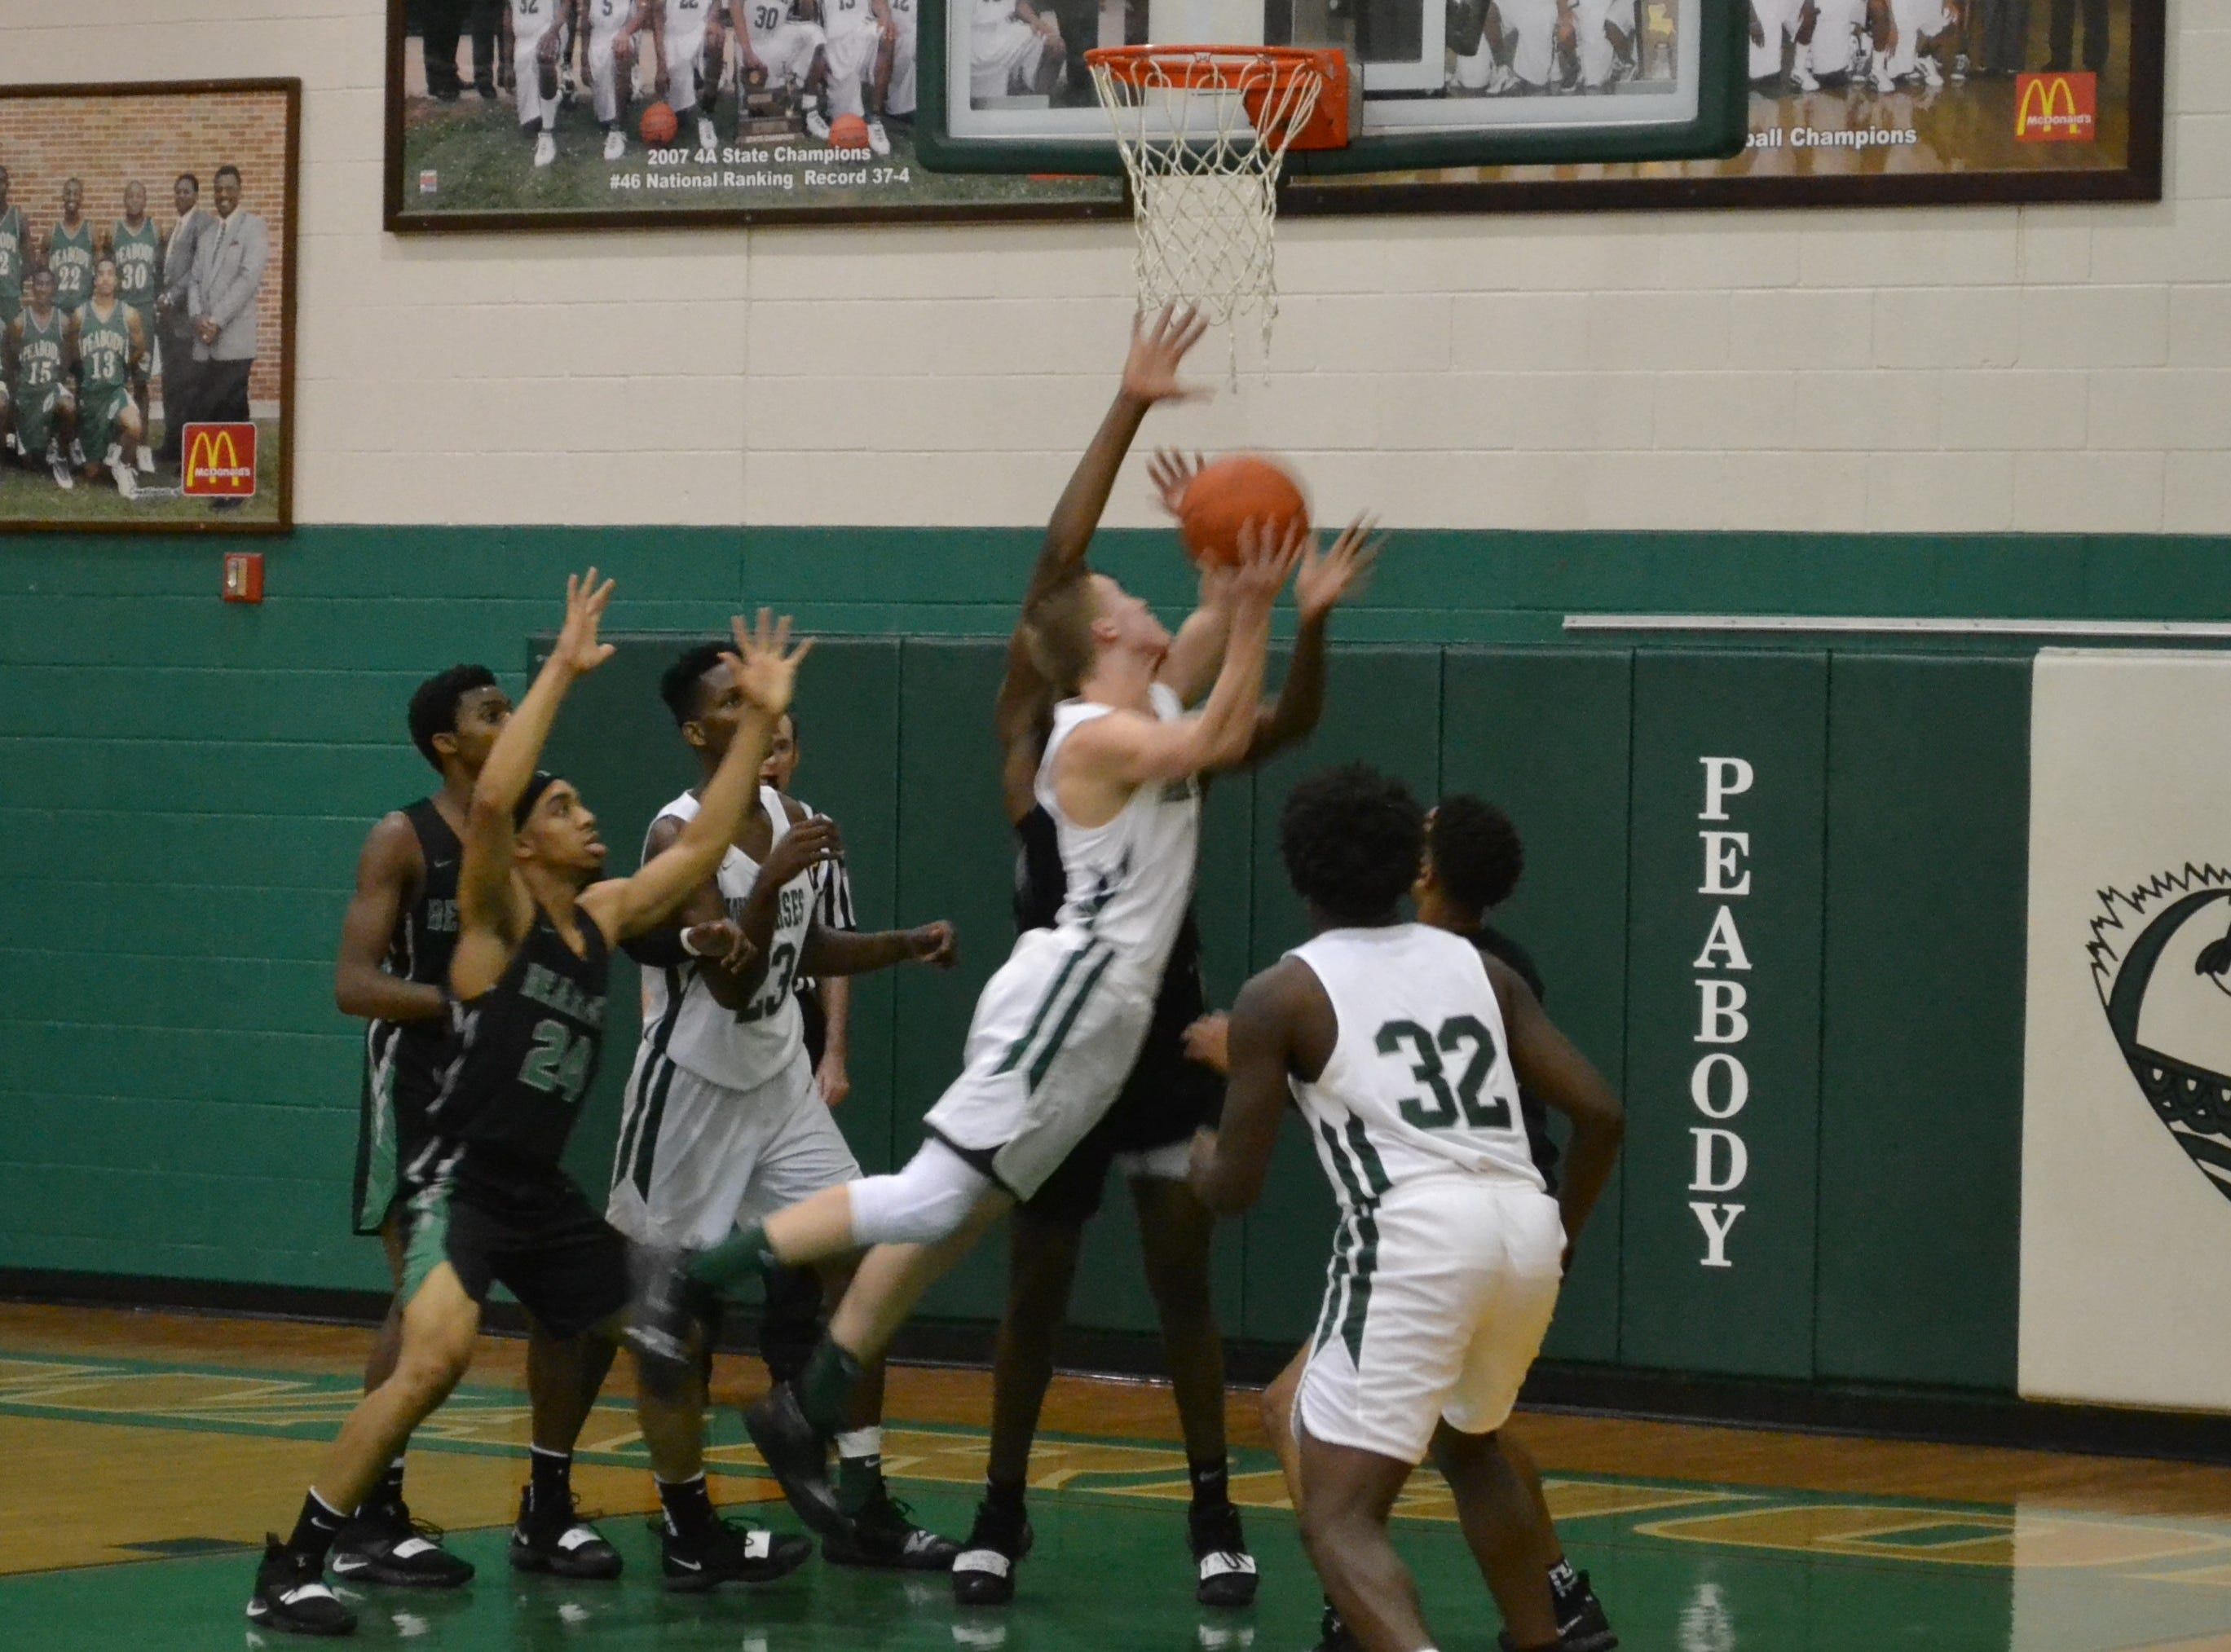 Peabody's Caleb Howe (1) struggles to get off a shot around Bossier's Dante Bell. The Peabody boys basketball team played the Bossier Bearkats Tuesday night at the Emerald Palace. Peabody got the win 72-67.